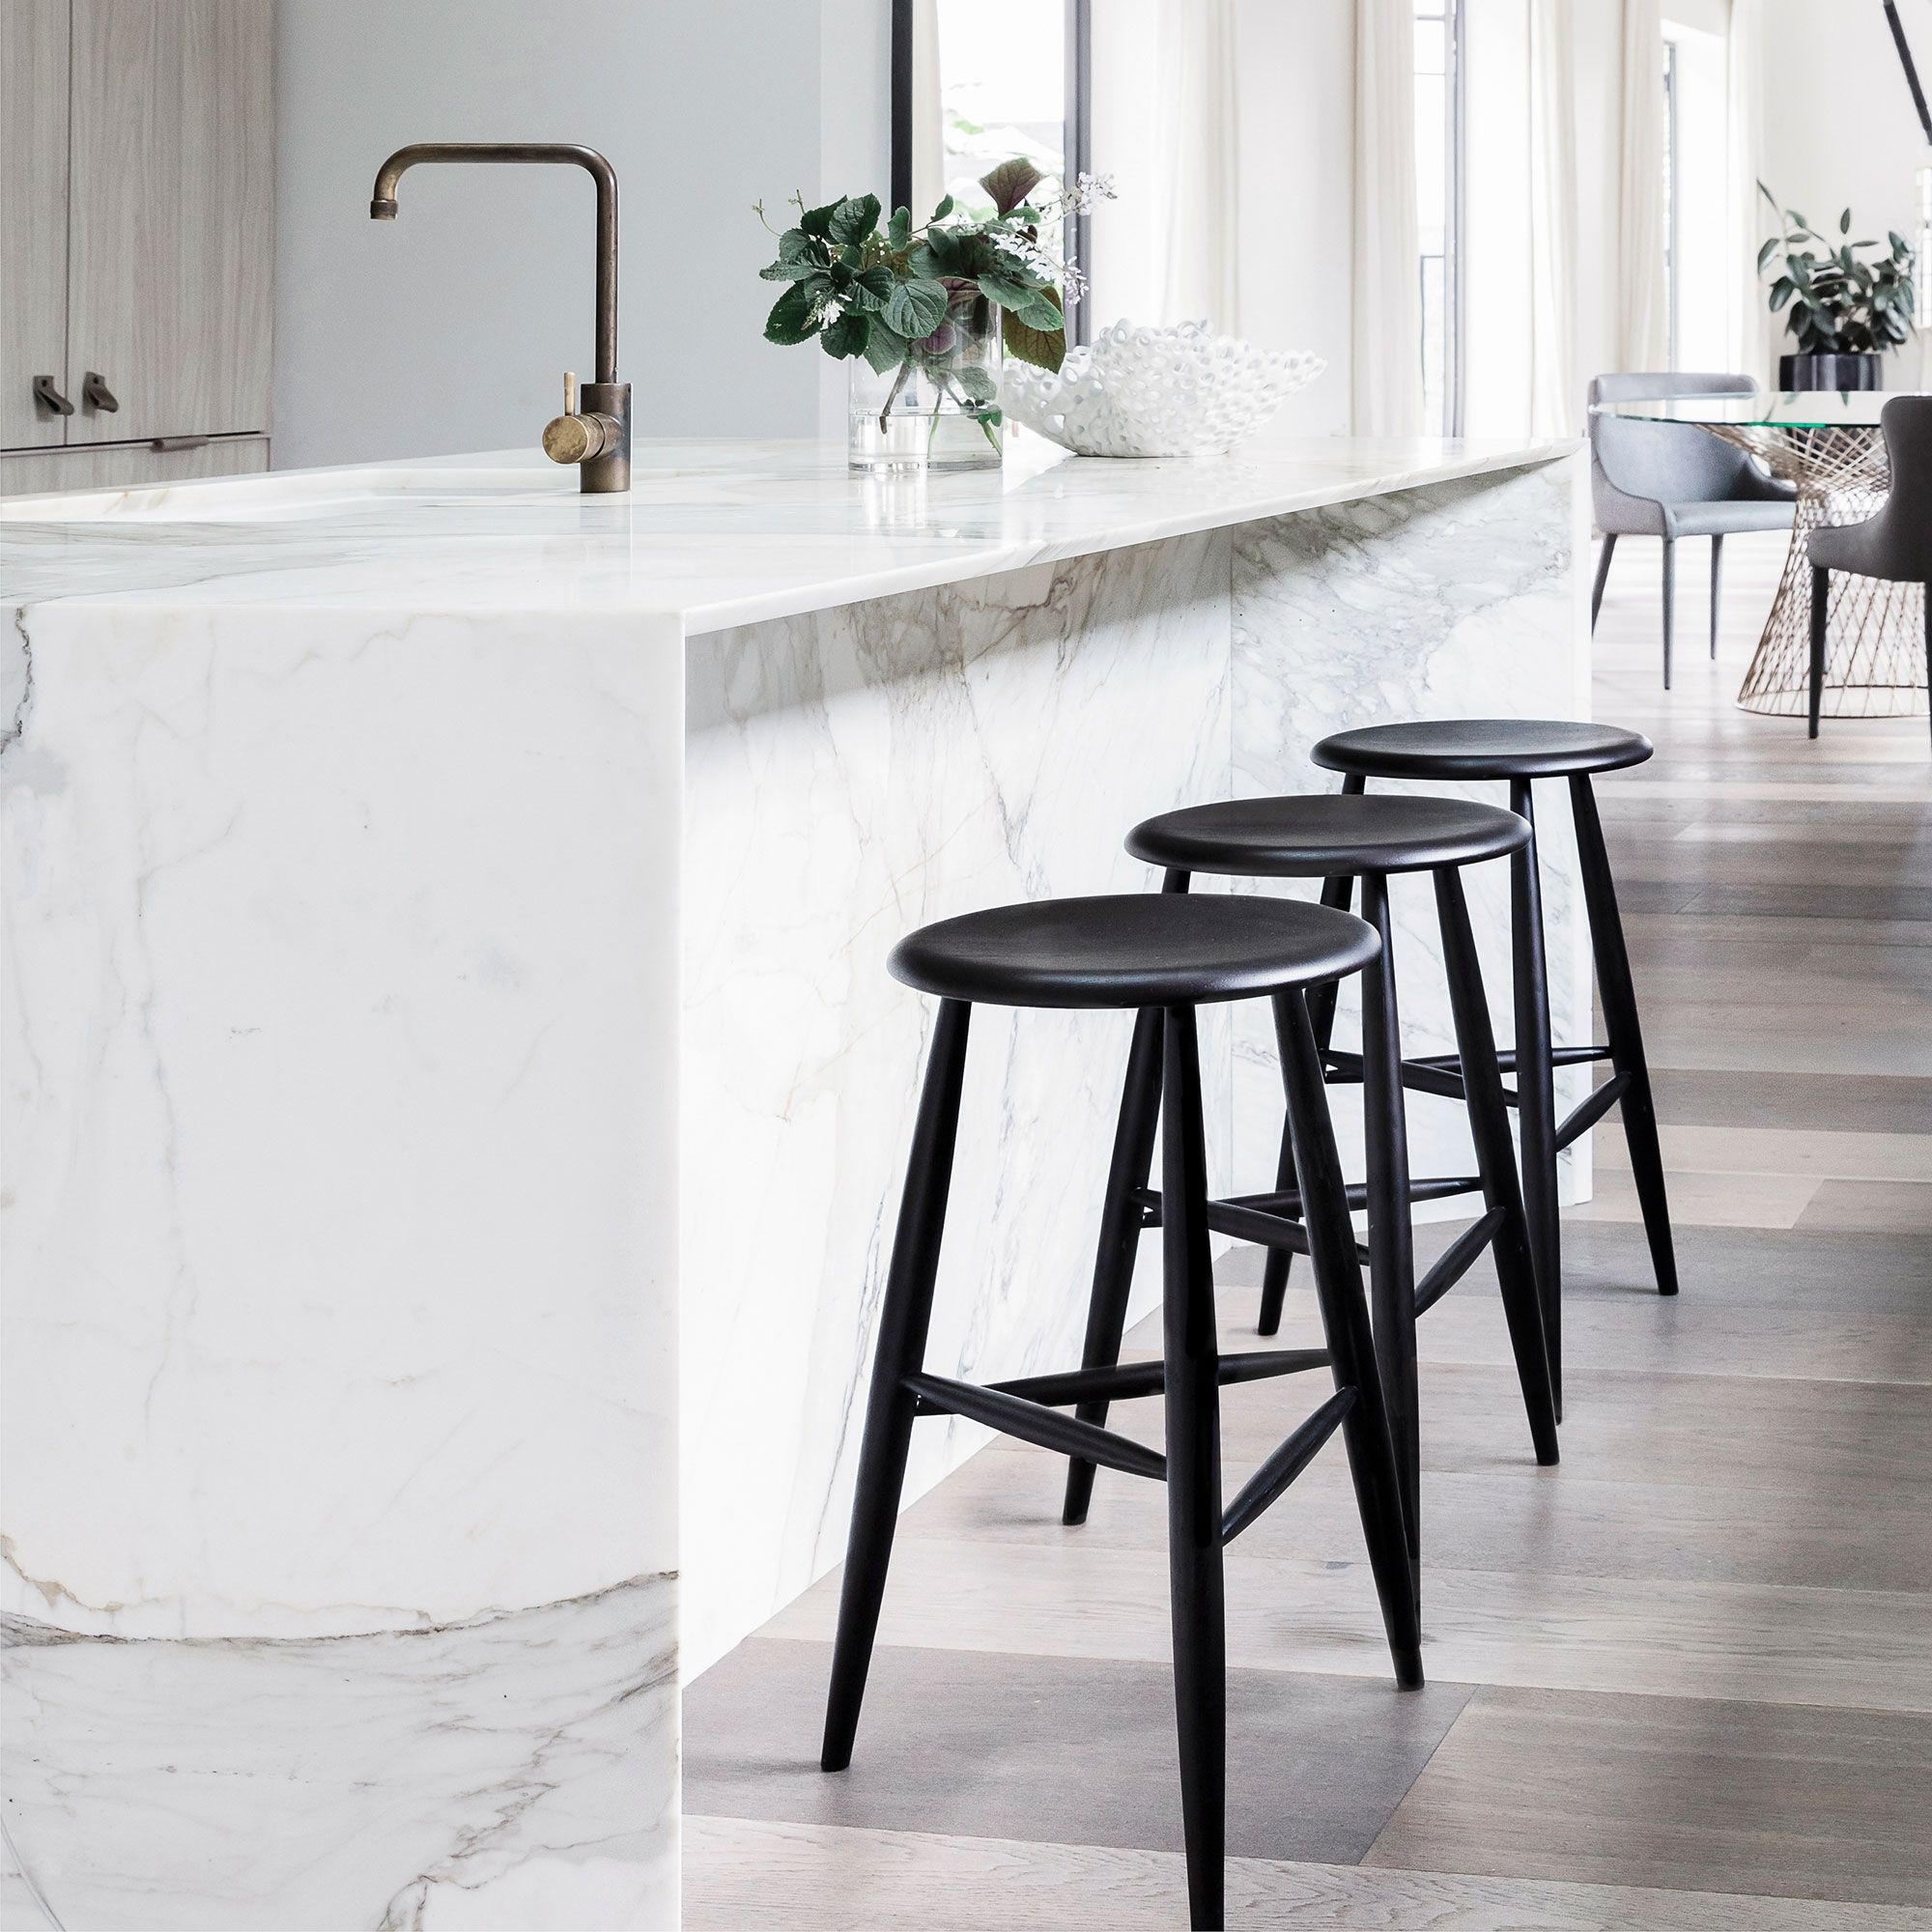 Roxton Timber Stool | Stools In 2019 | Home Decor Kitchen, Wooden Dining Room Chairs, Modern Bar Stools